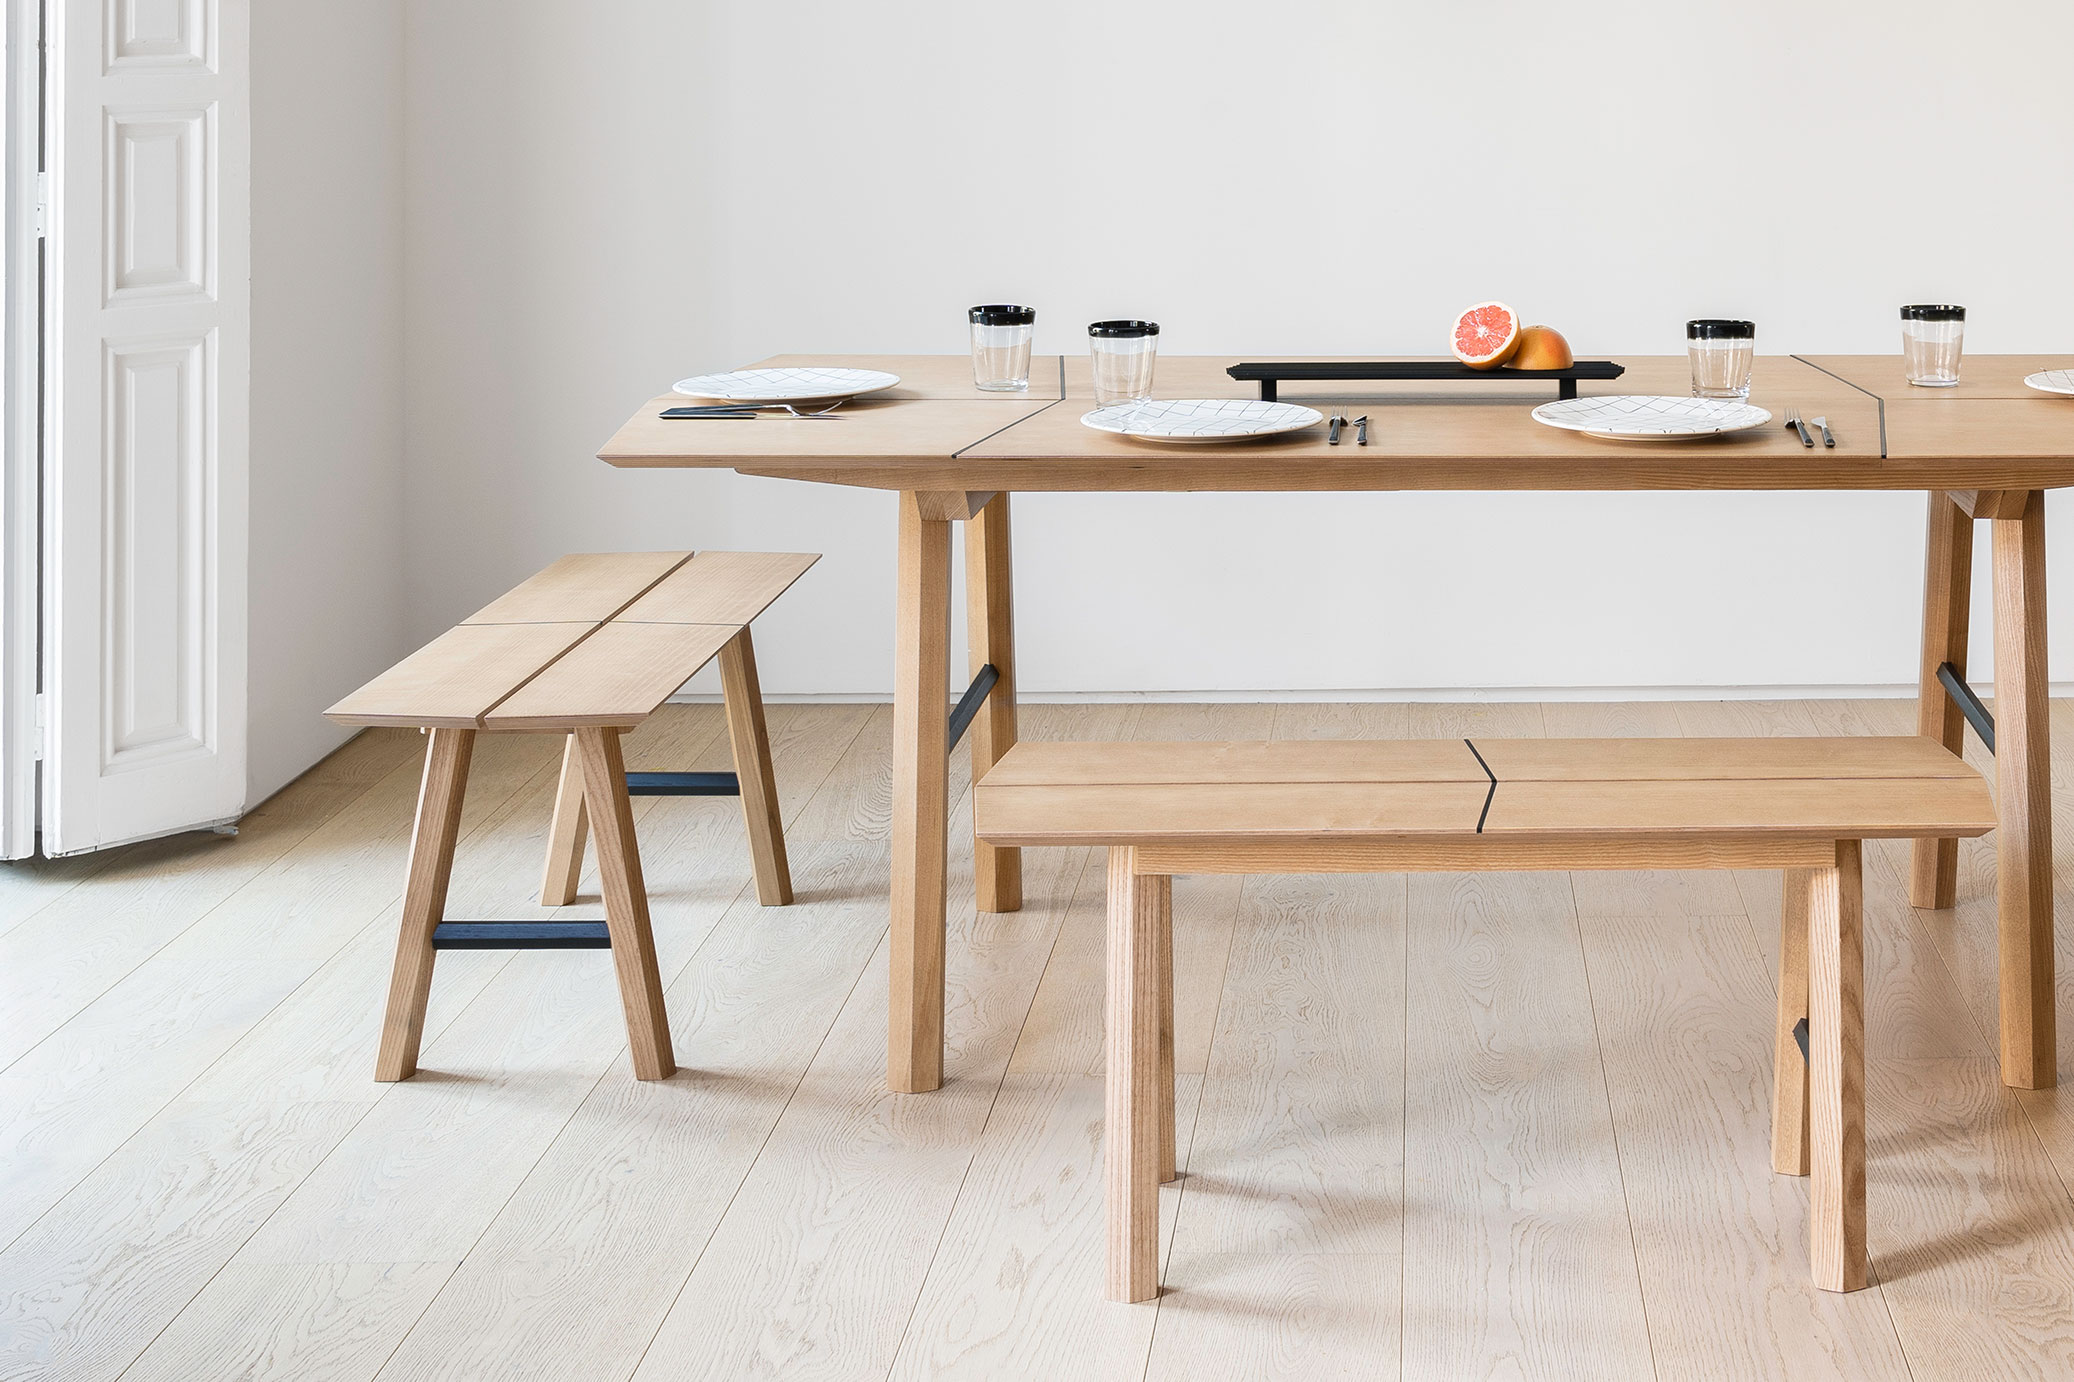 Savia desk wooden table multifunctional